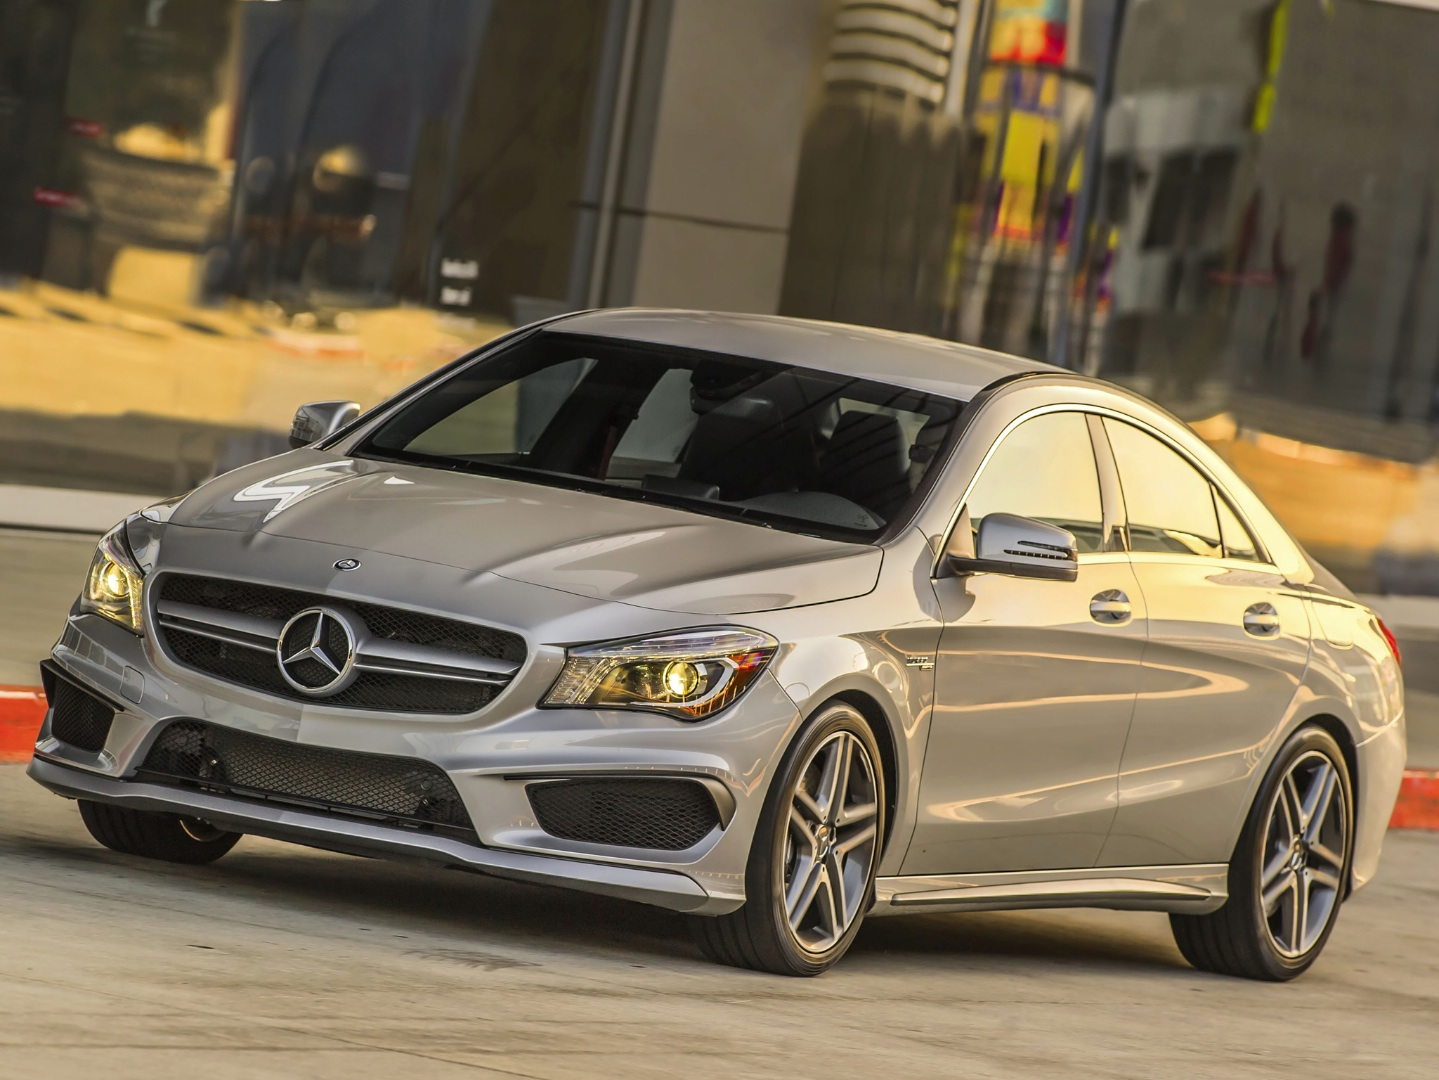 Mercedes benz usa breaks all time sales record in 2013 for Mercedes benz ua